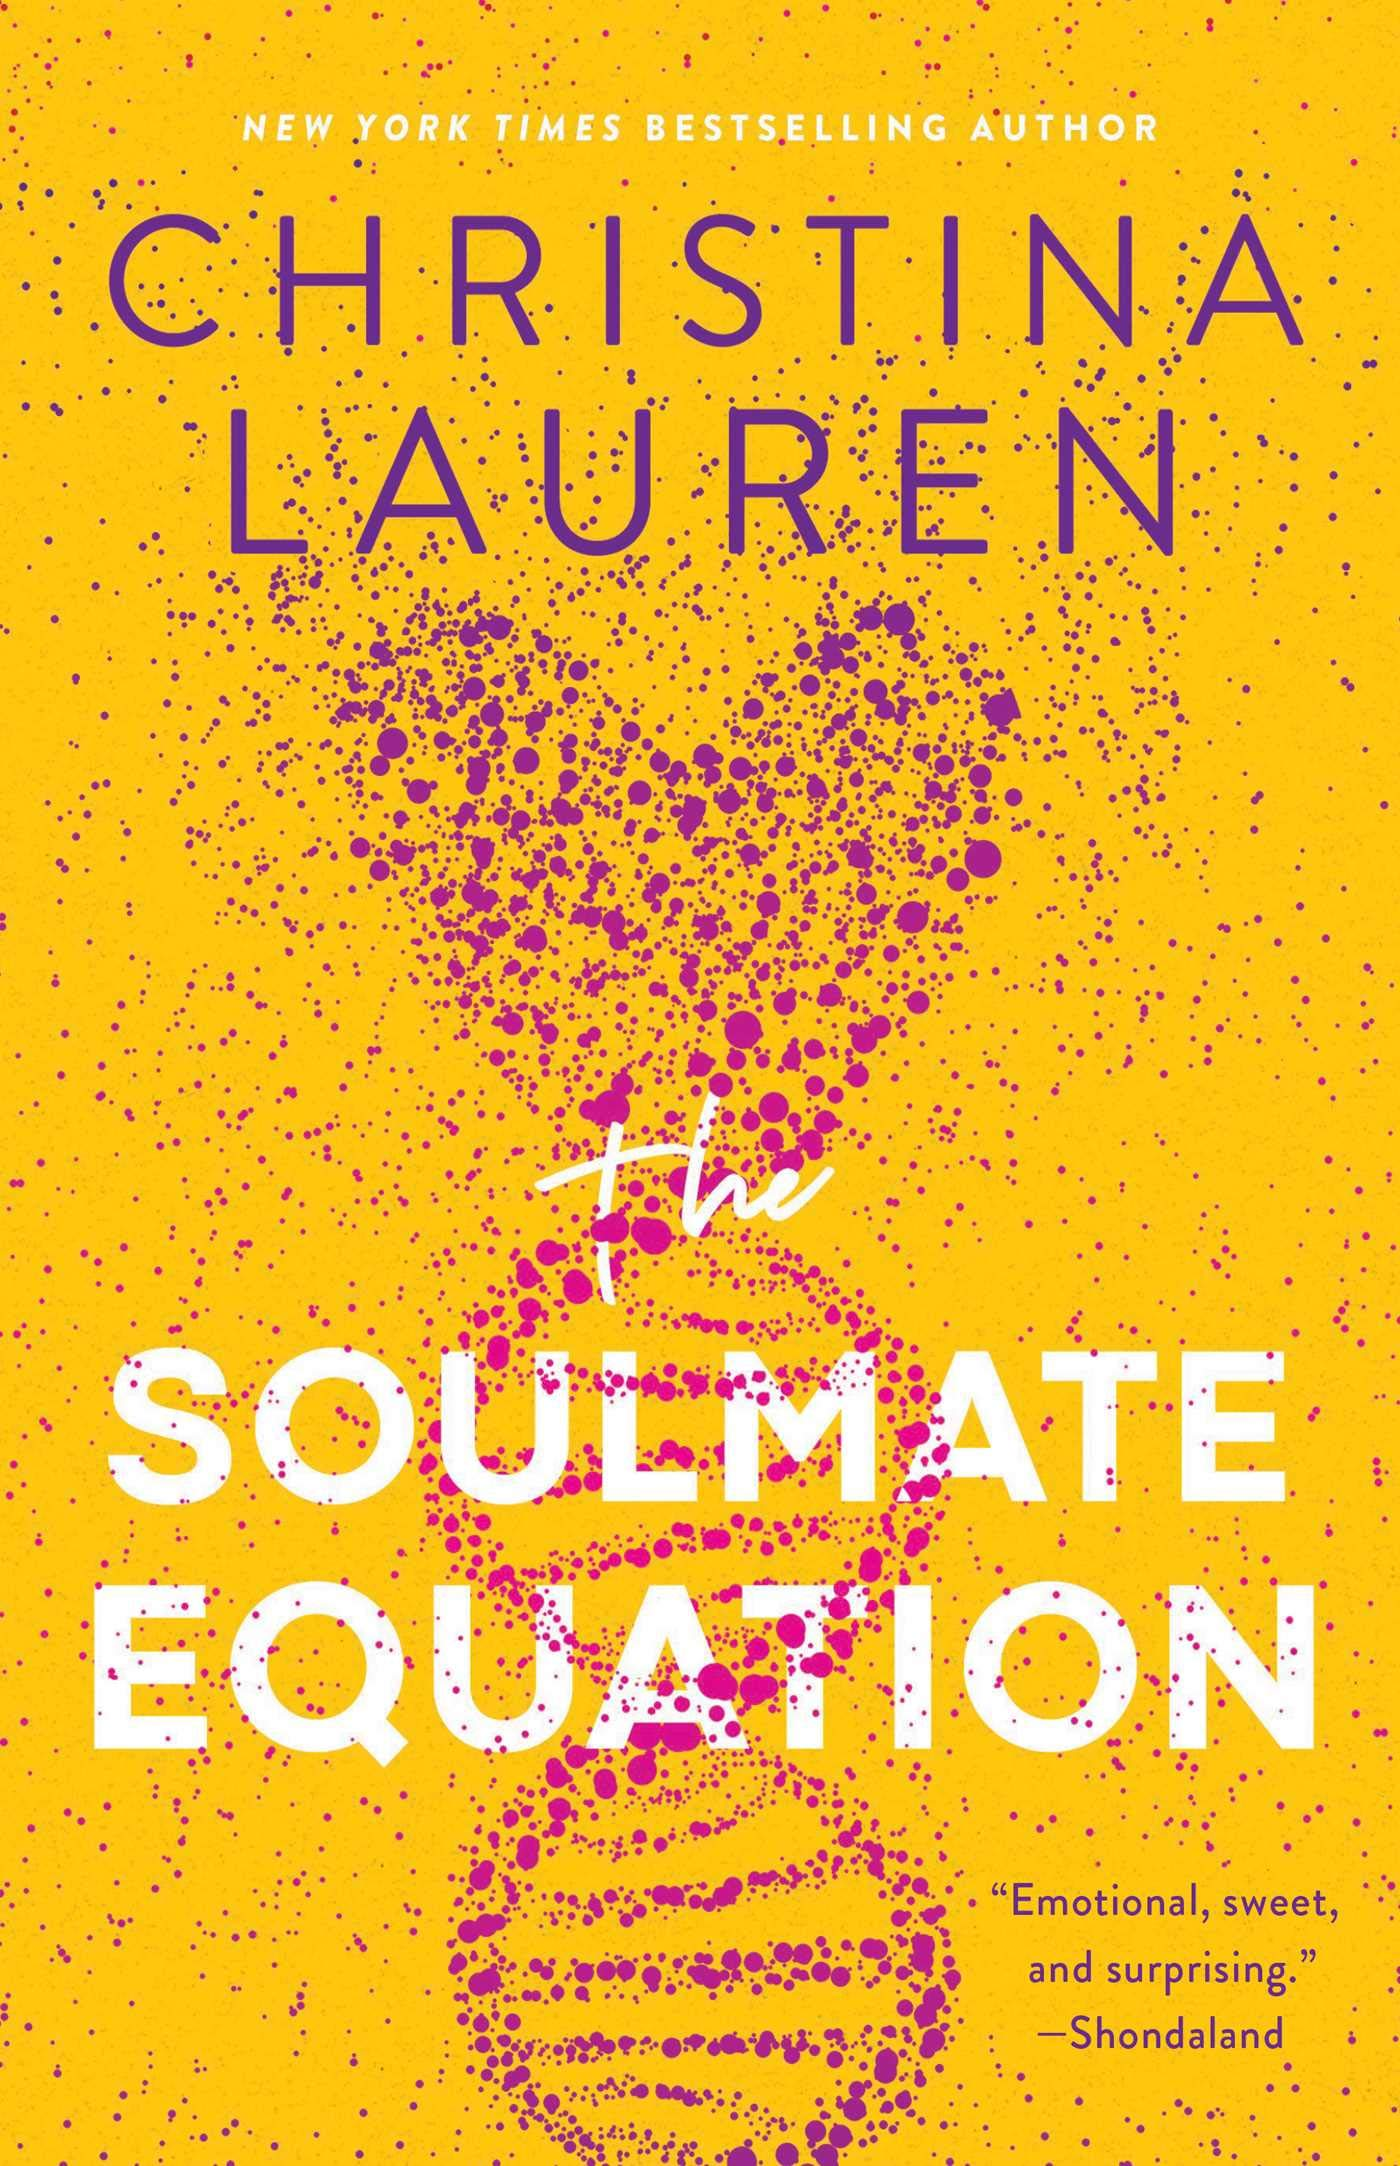 The Soulmate Equation by Christina Lauren book cover